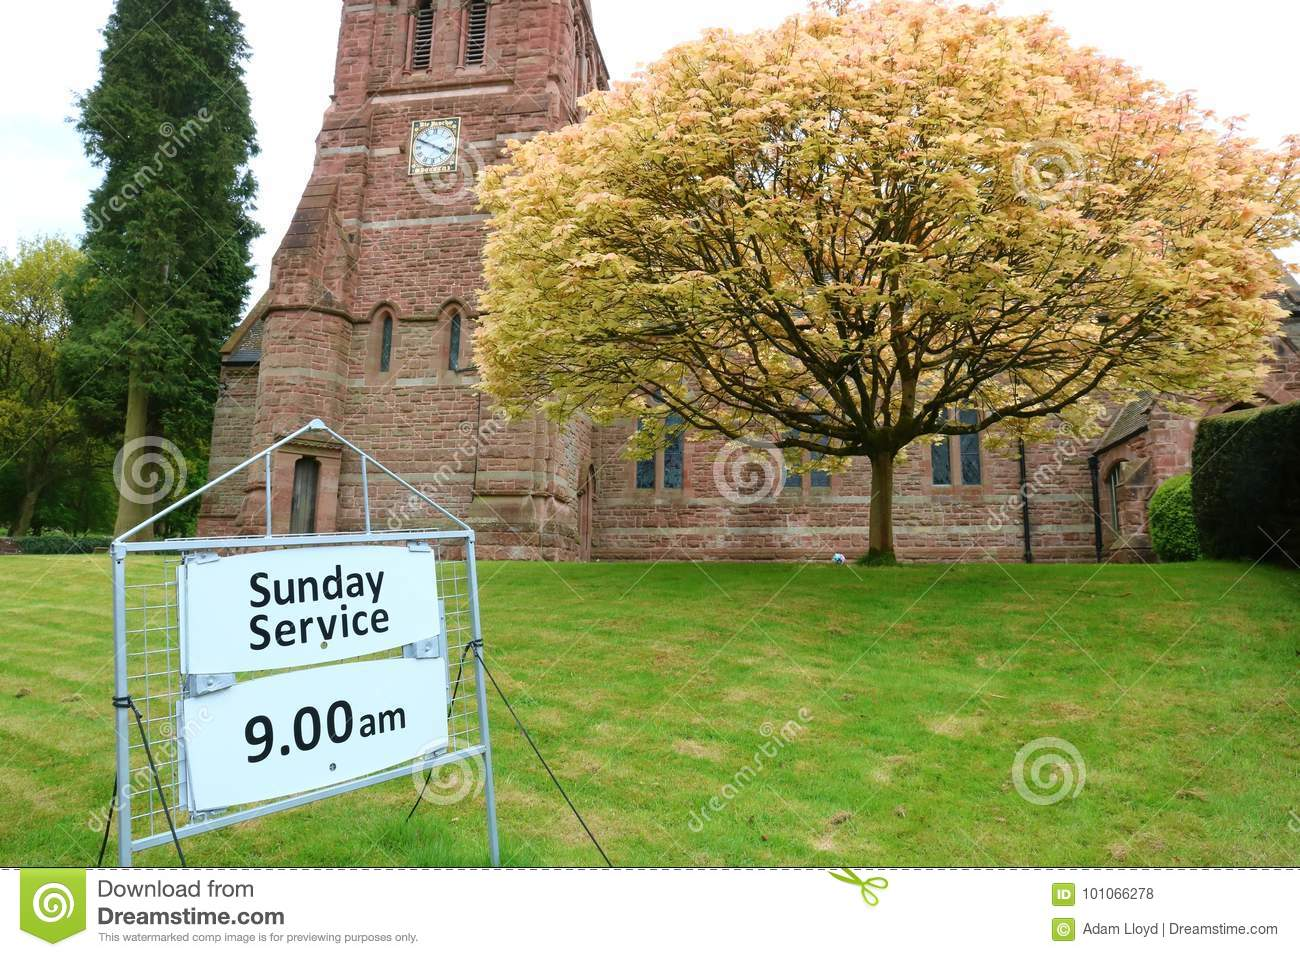 Church and service sign.